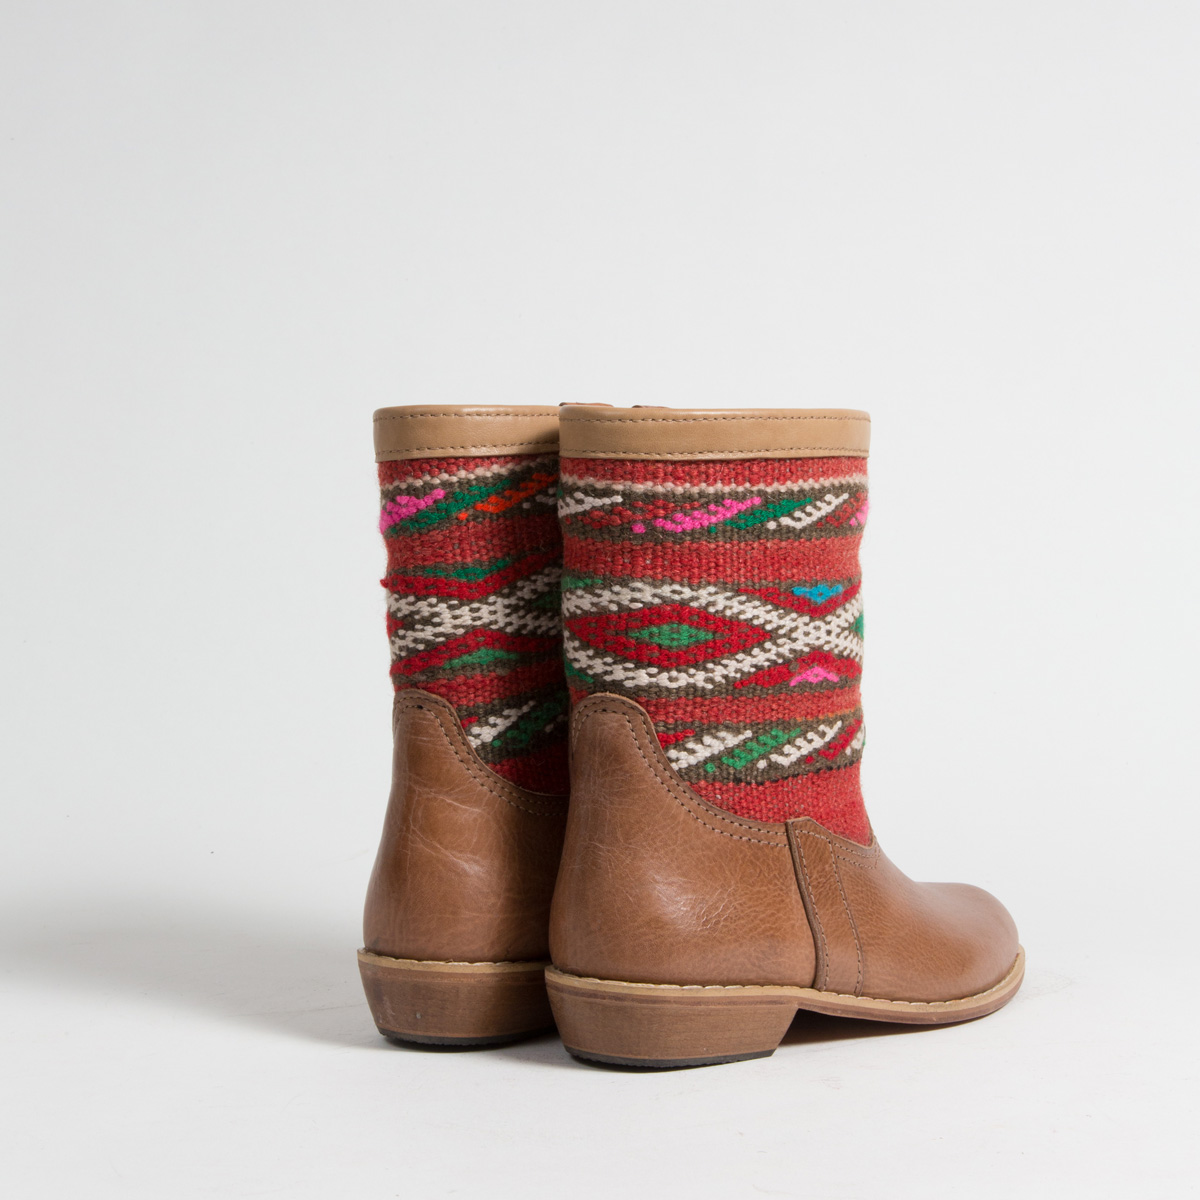 Bottines Kilim cuir mababouche artisanales (Réf. MCH1-36)